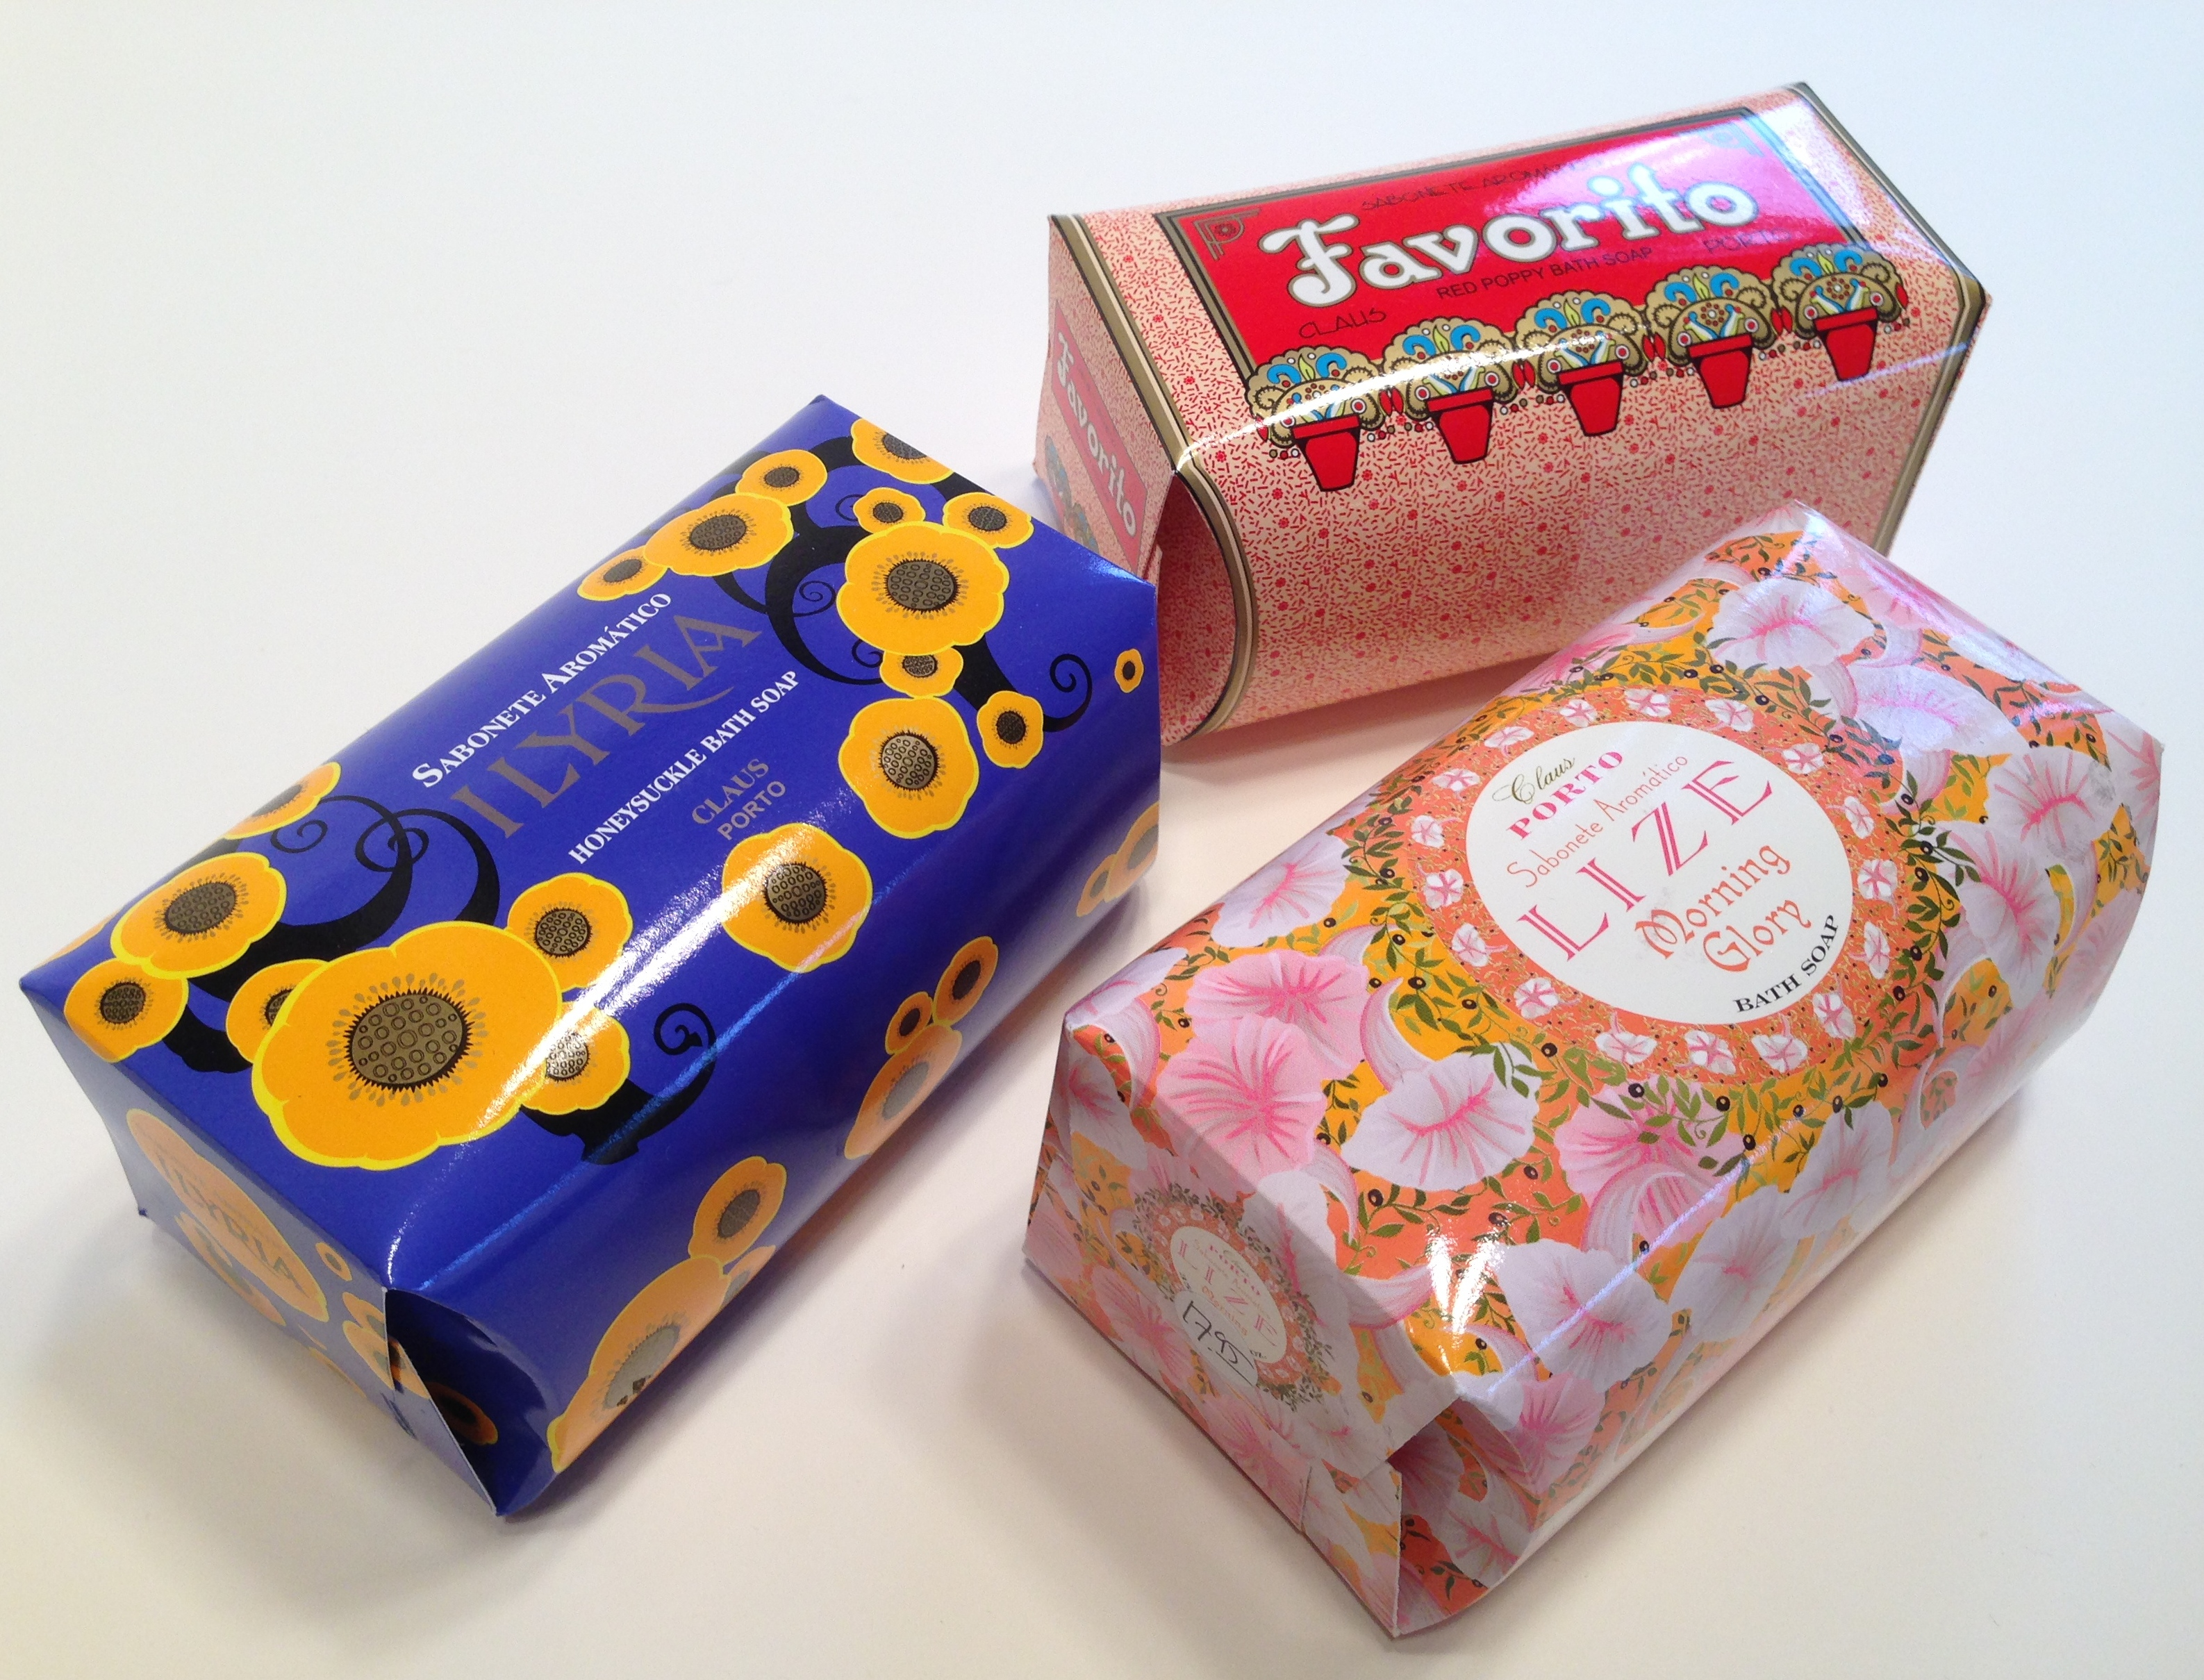 Clas porto soaps go home modern decor gifts for Modern home decor gifts